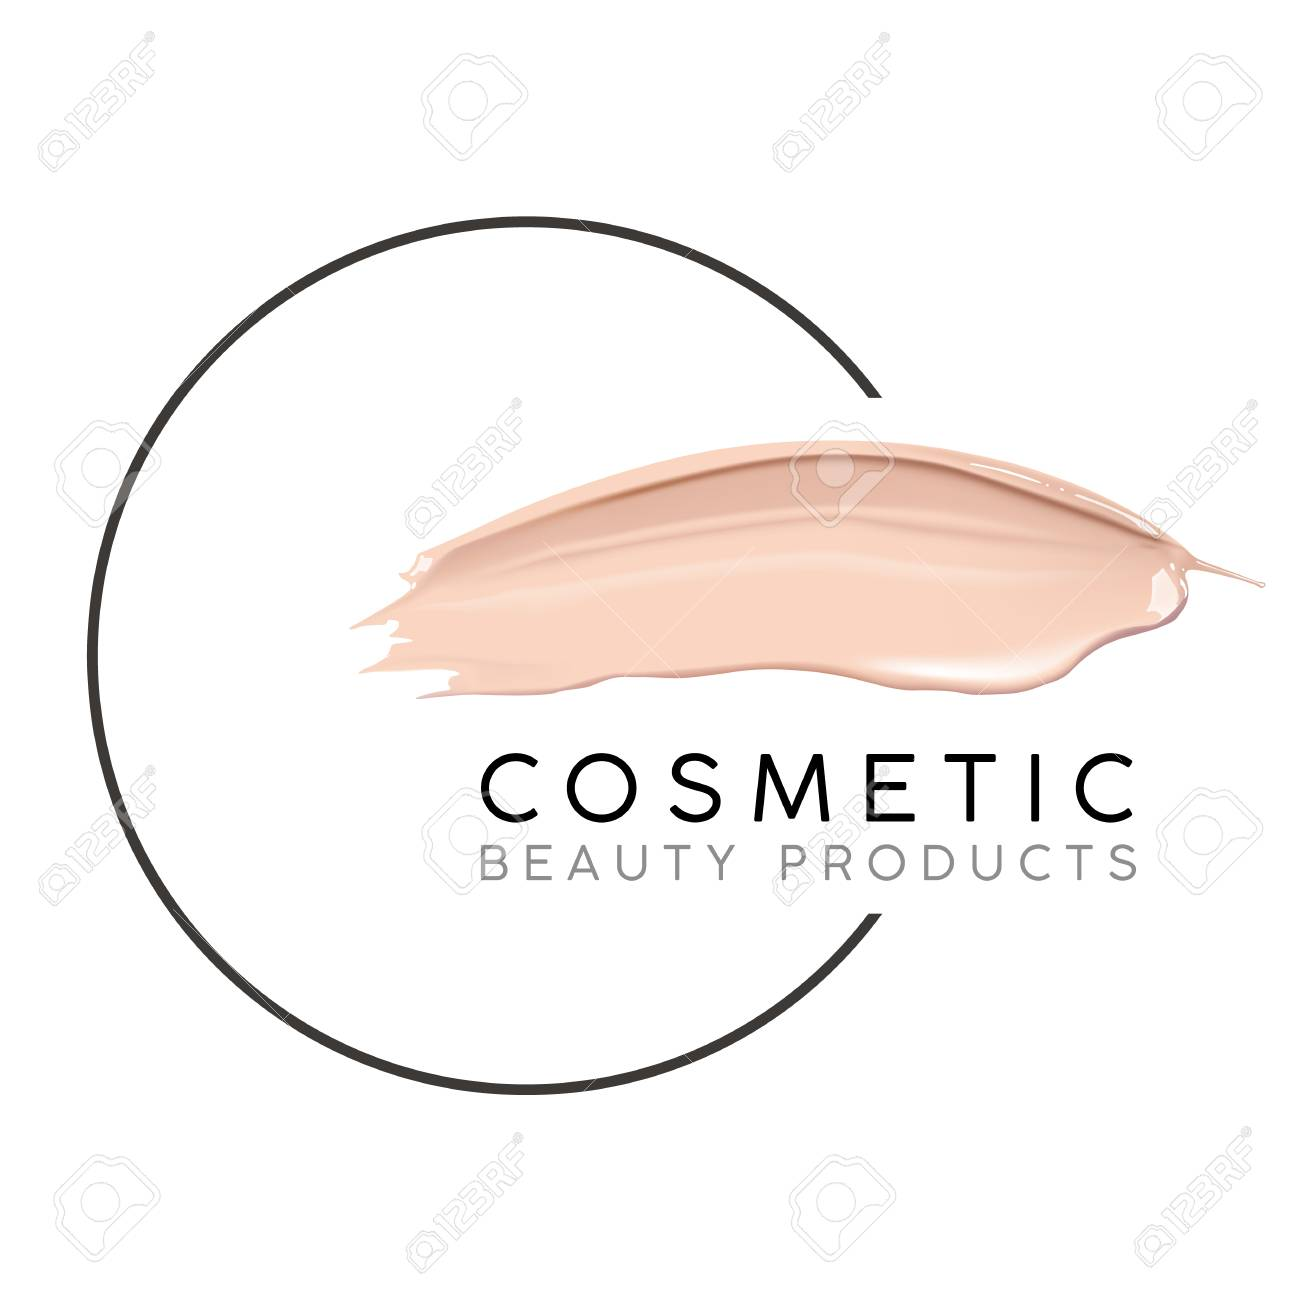 Makeup design template with place for text. Cosmetic Logo concept of liquid foundation and lipstick smear strokes. - 86732248